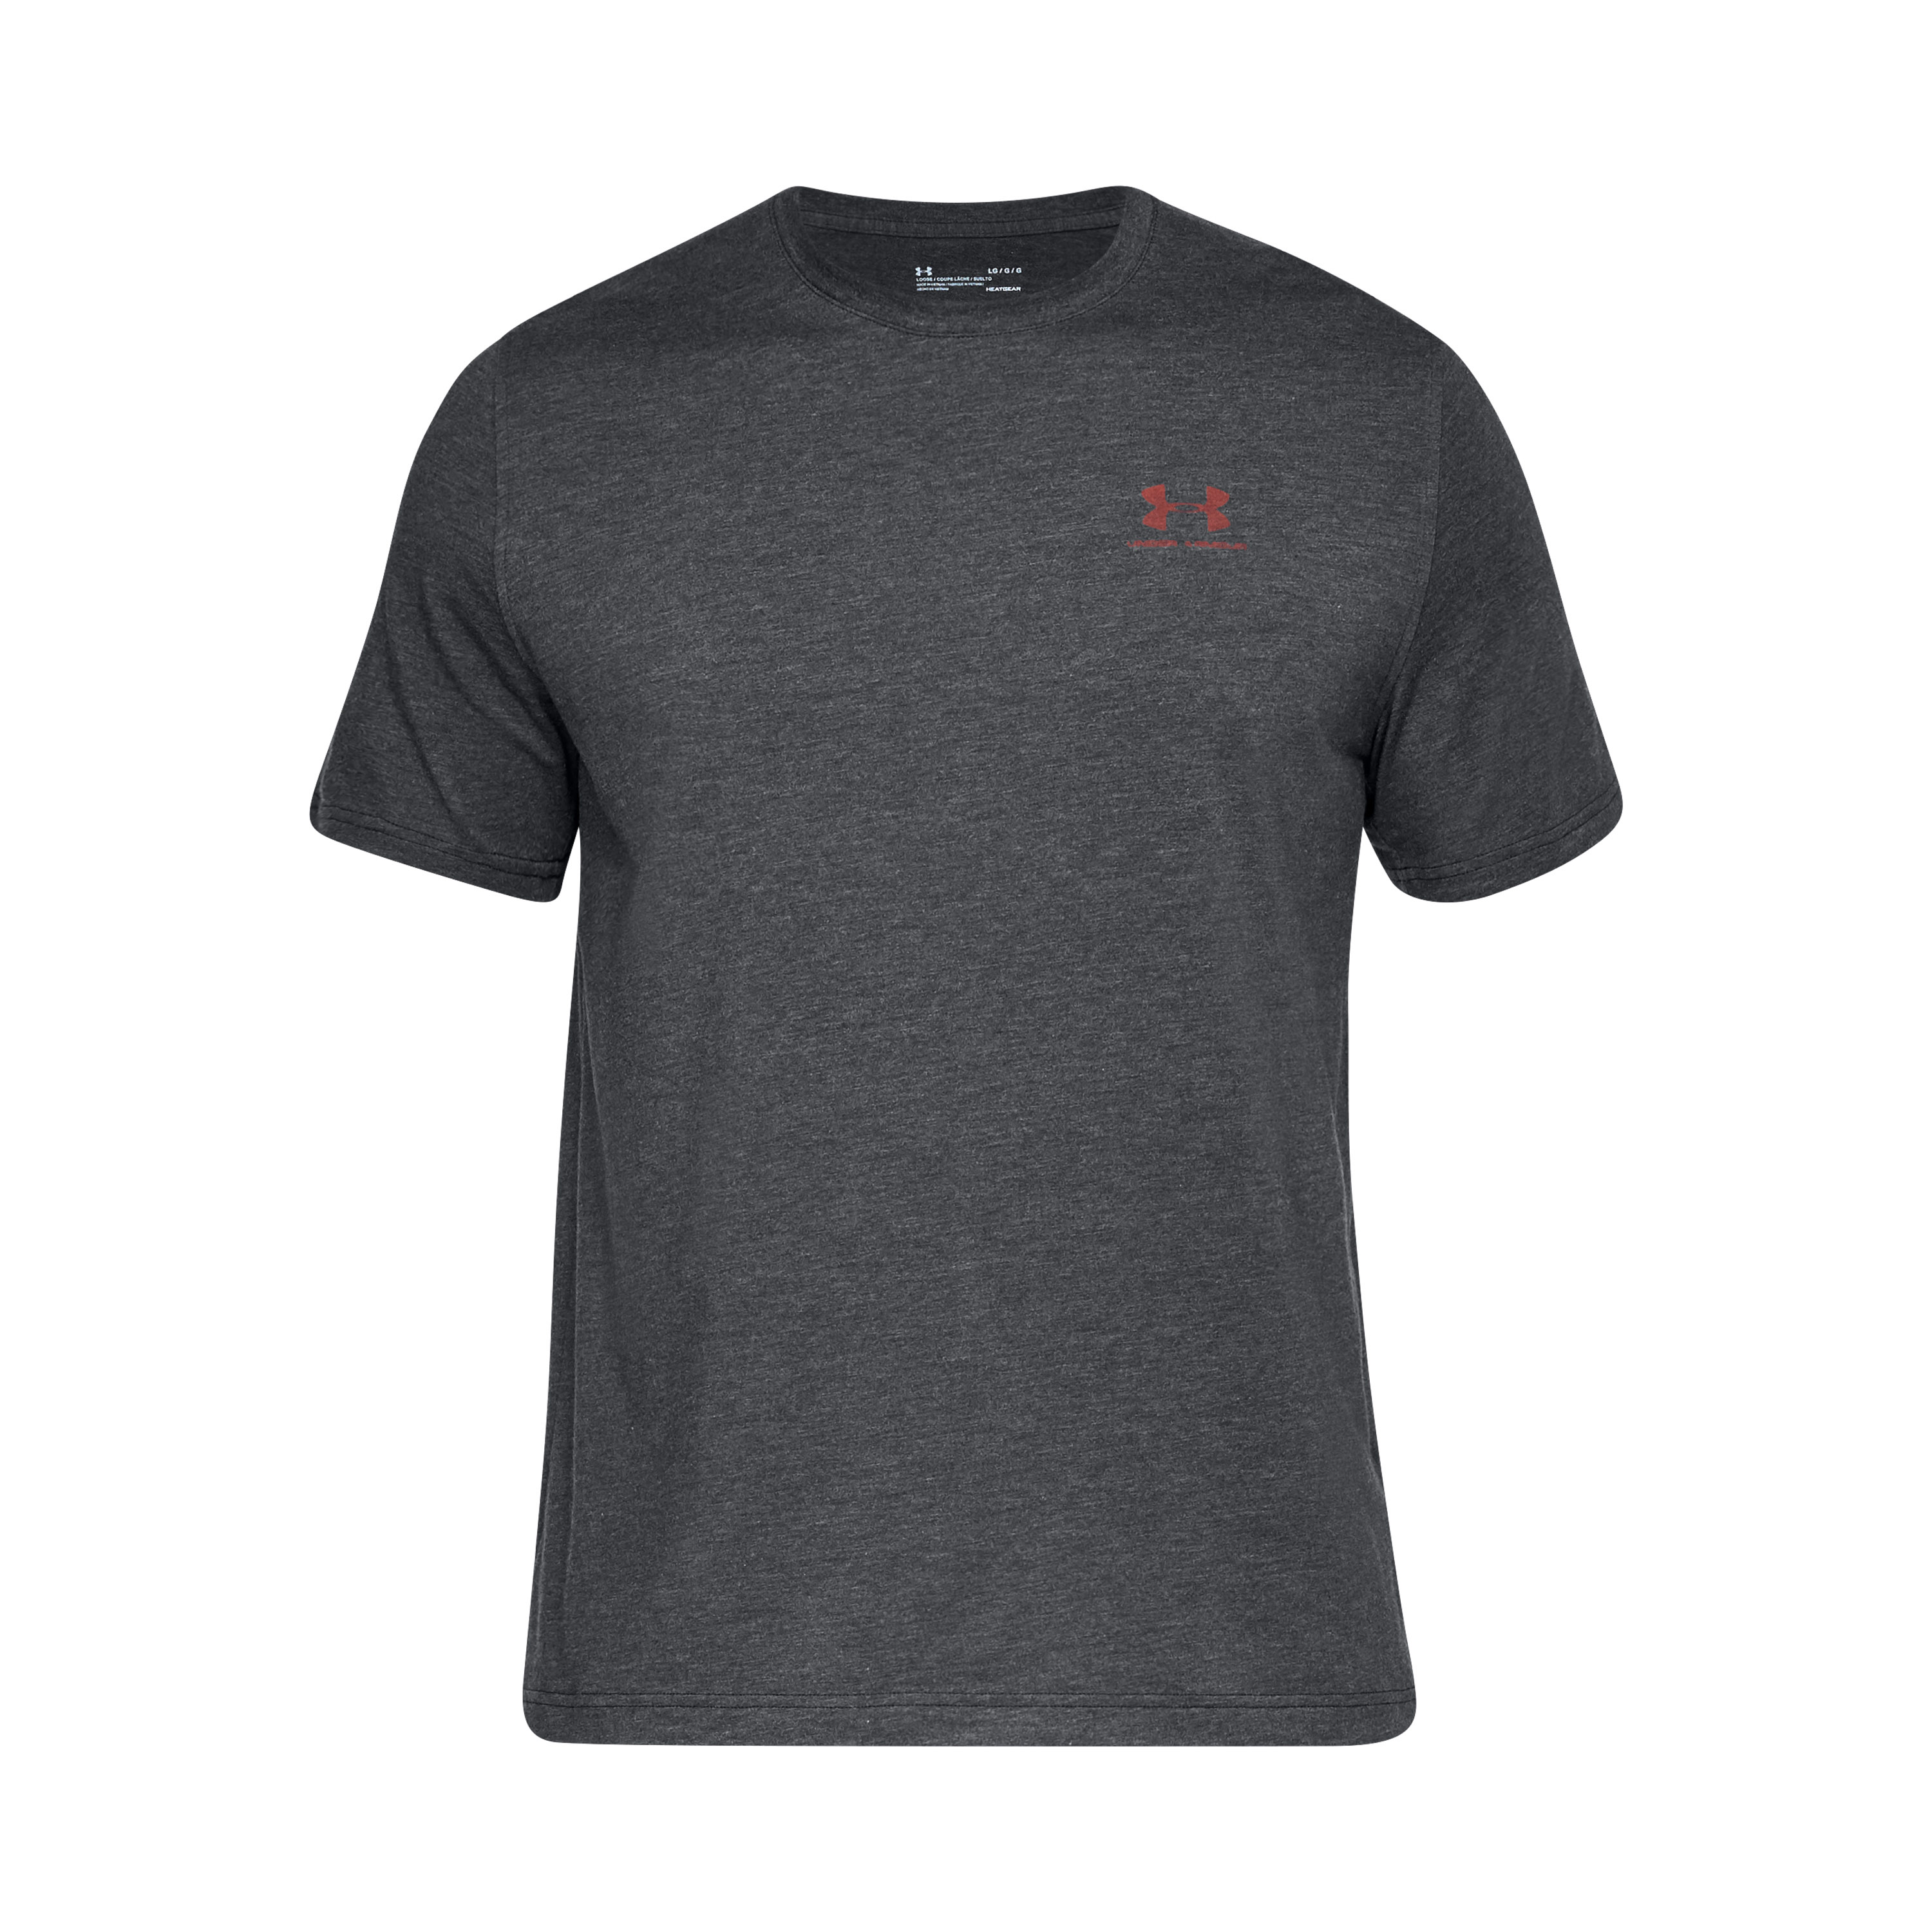 Under Armour Shirt CC Sport Style black/red